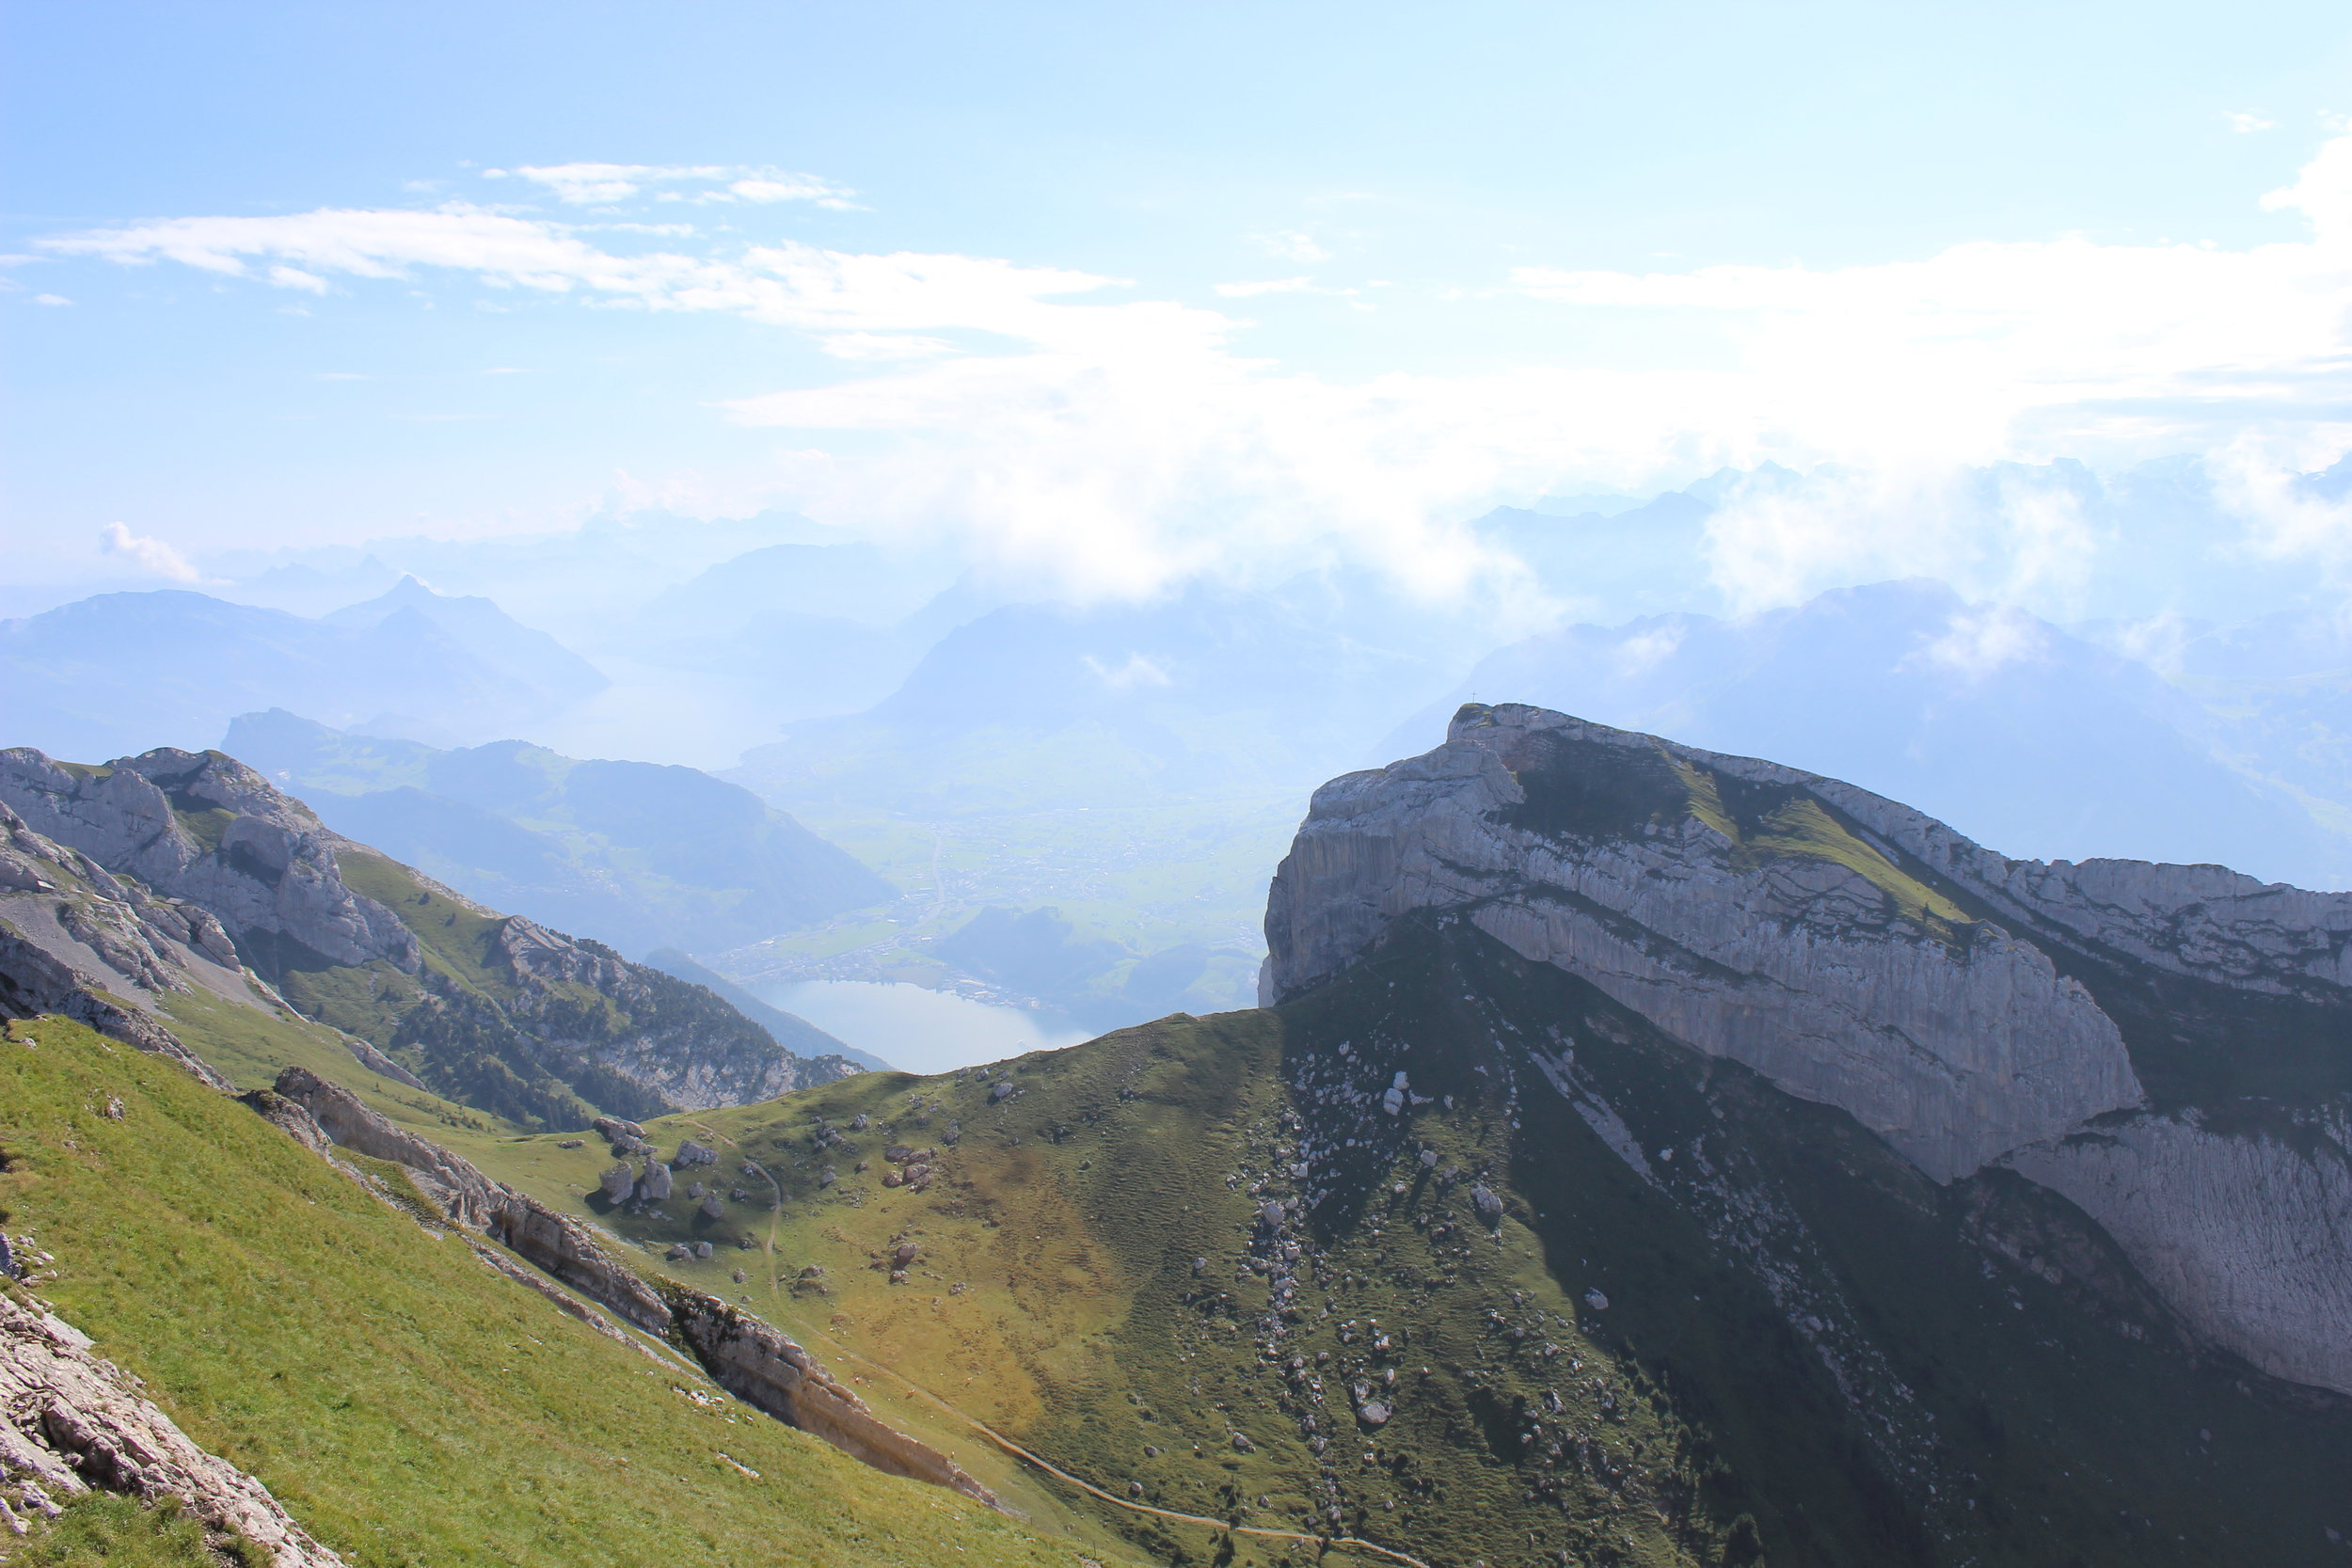 View from atop Mt. Pilatus on the Golden Tour